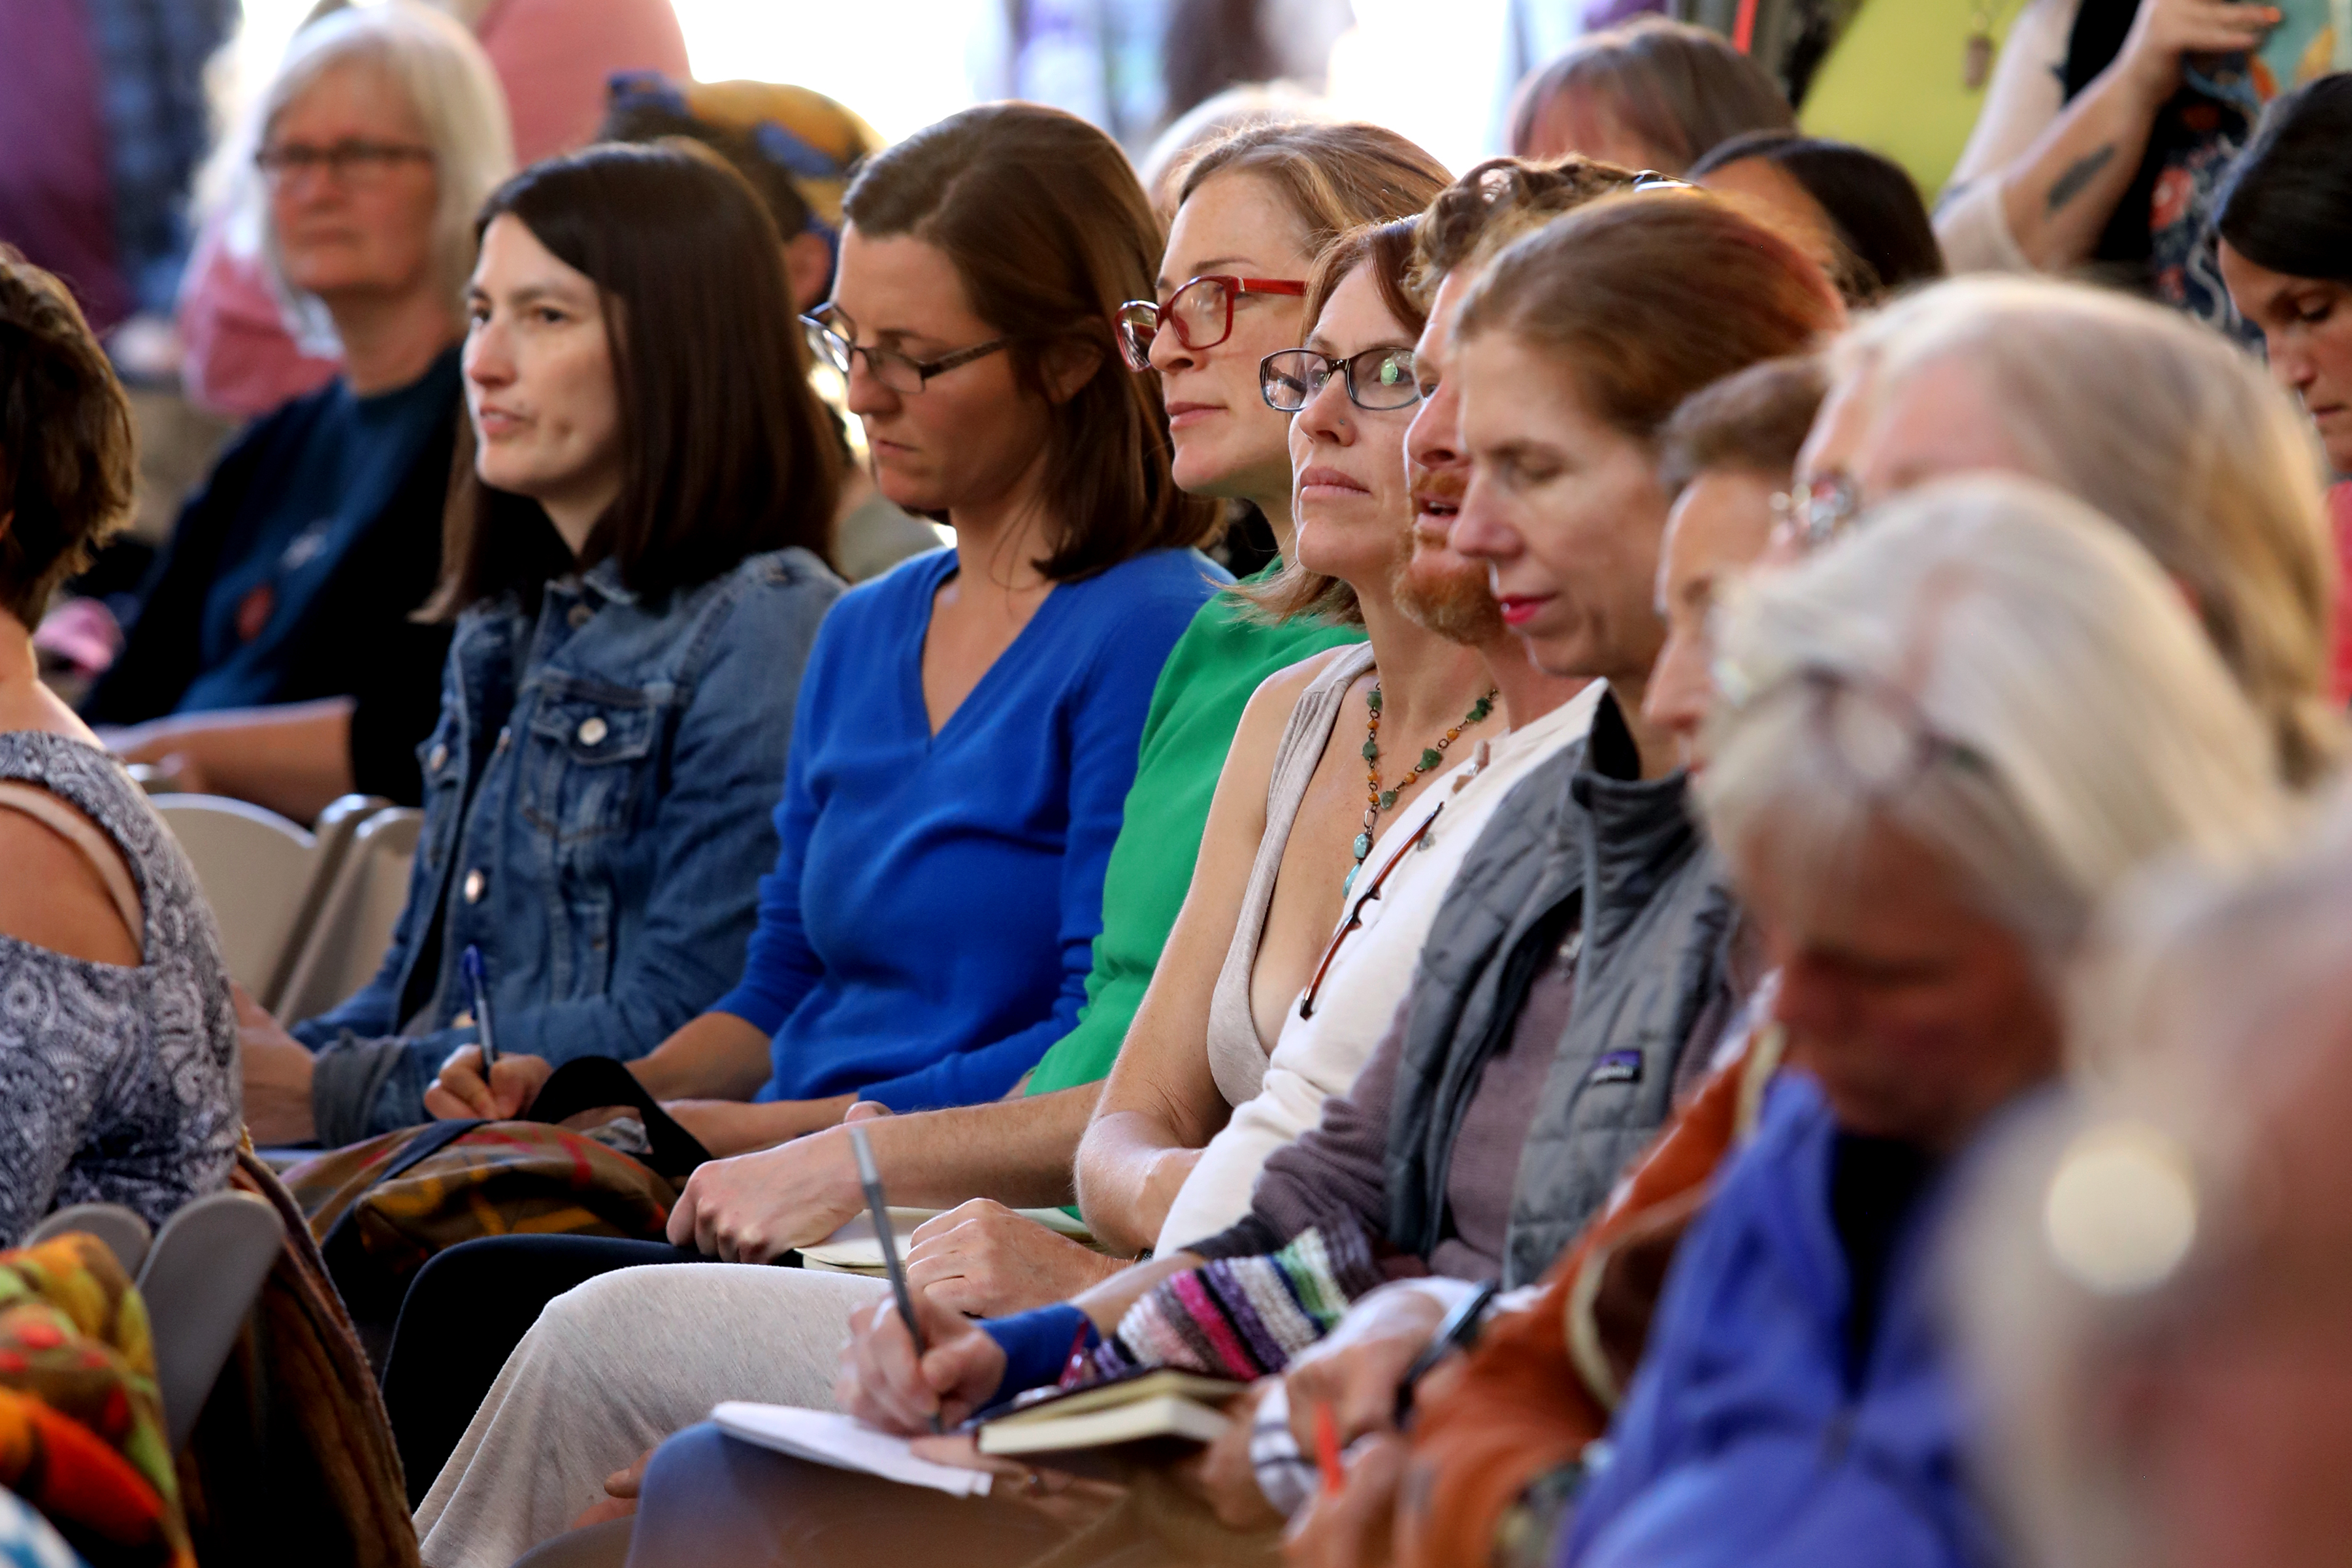 Group of people of mixed ages listening to a speech.